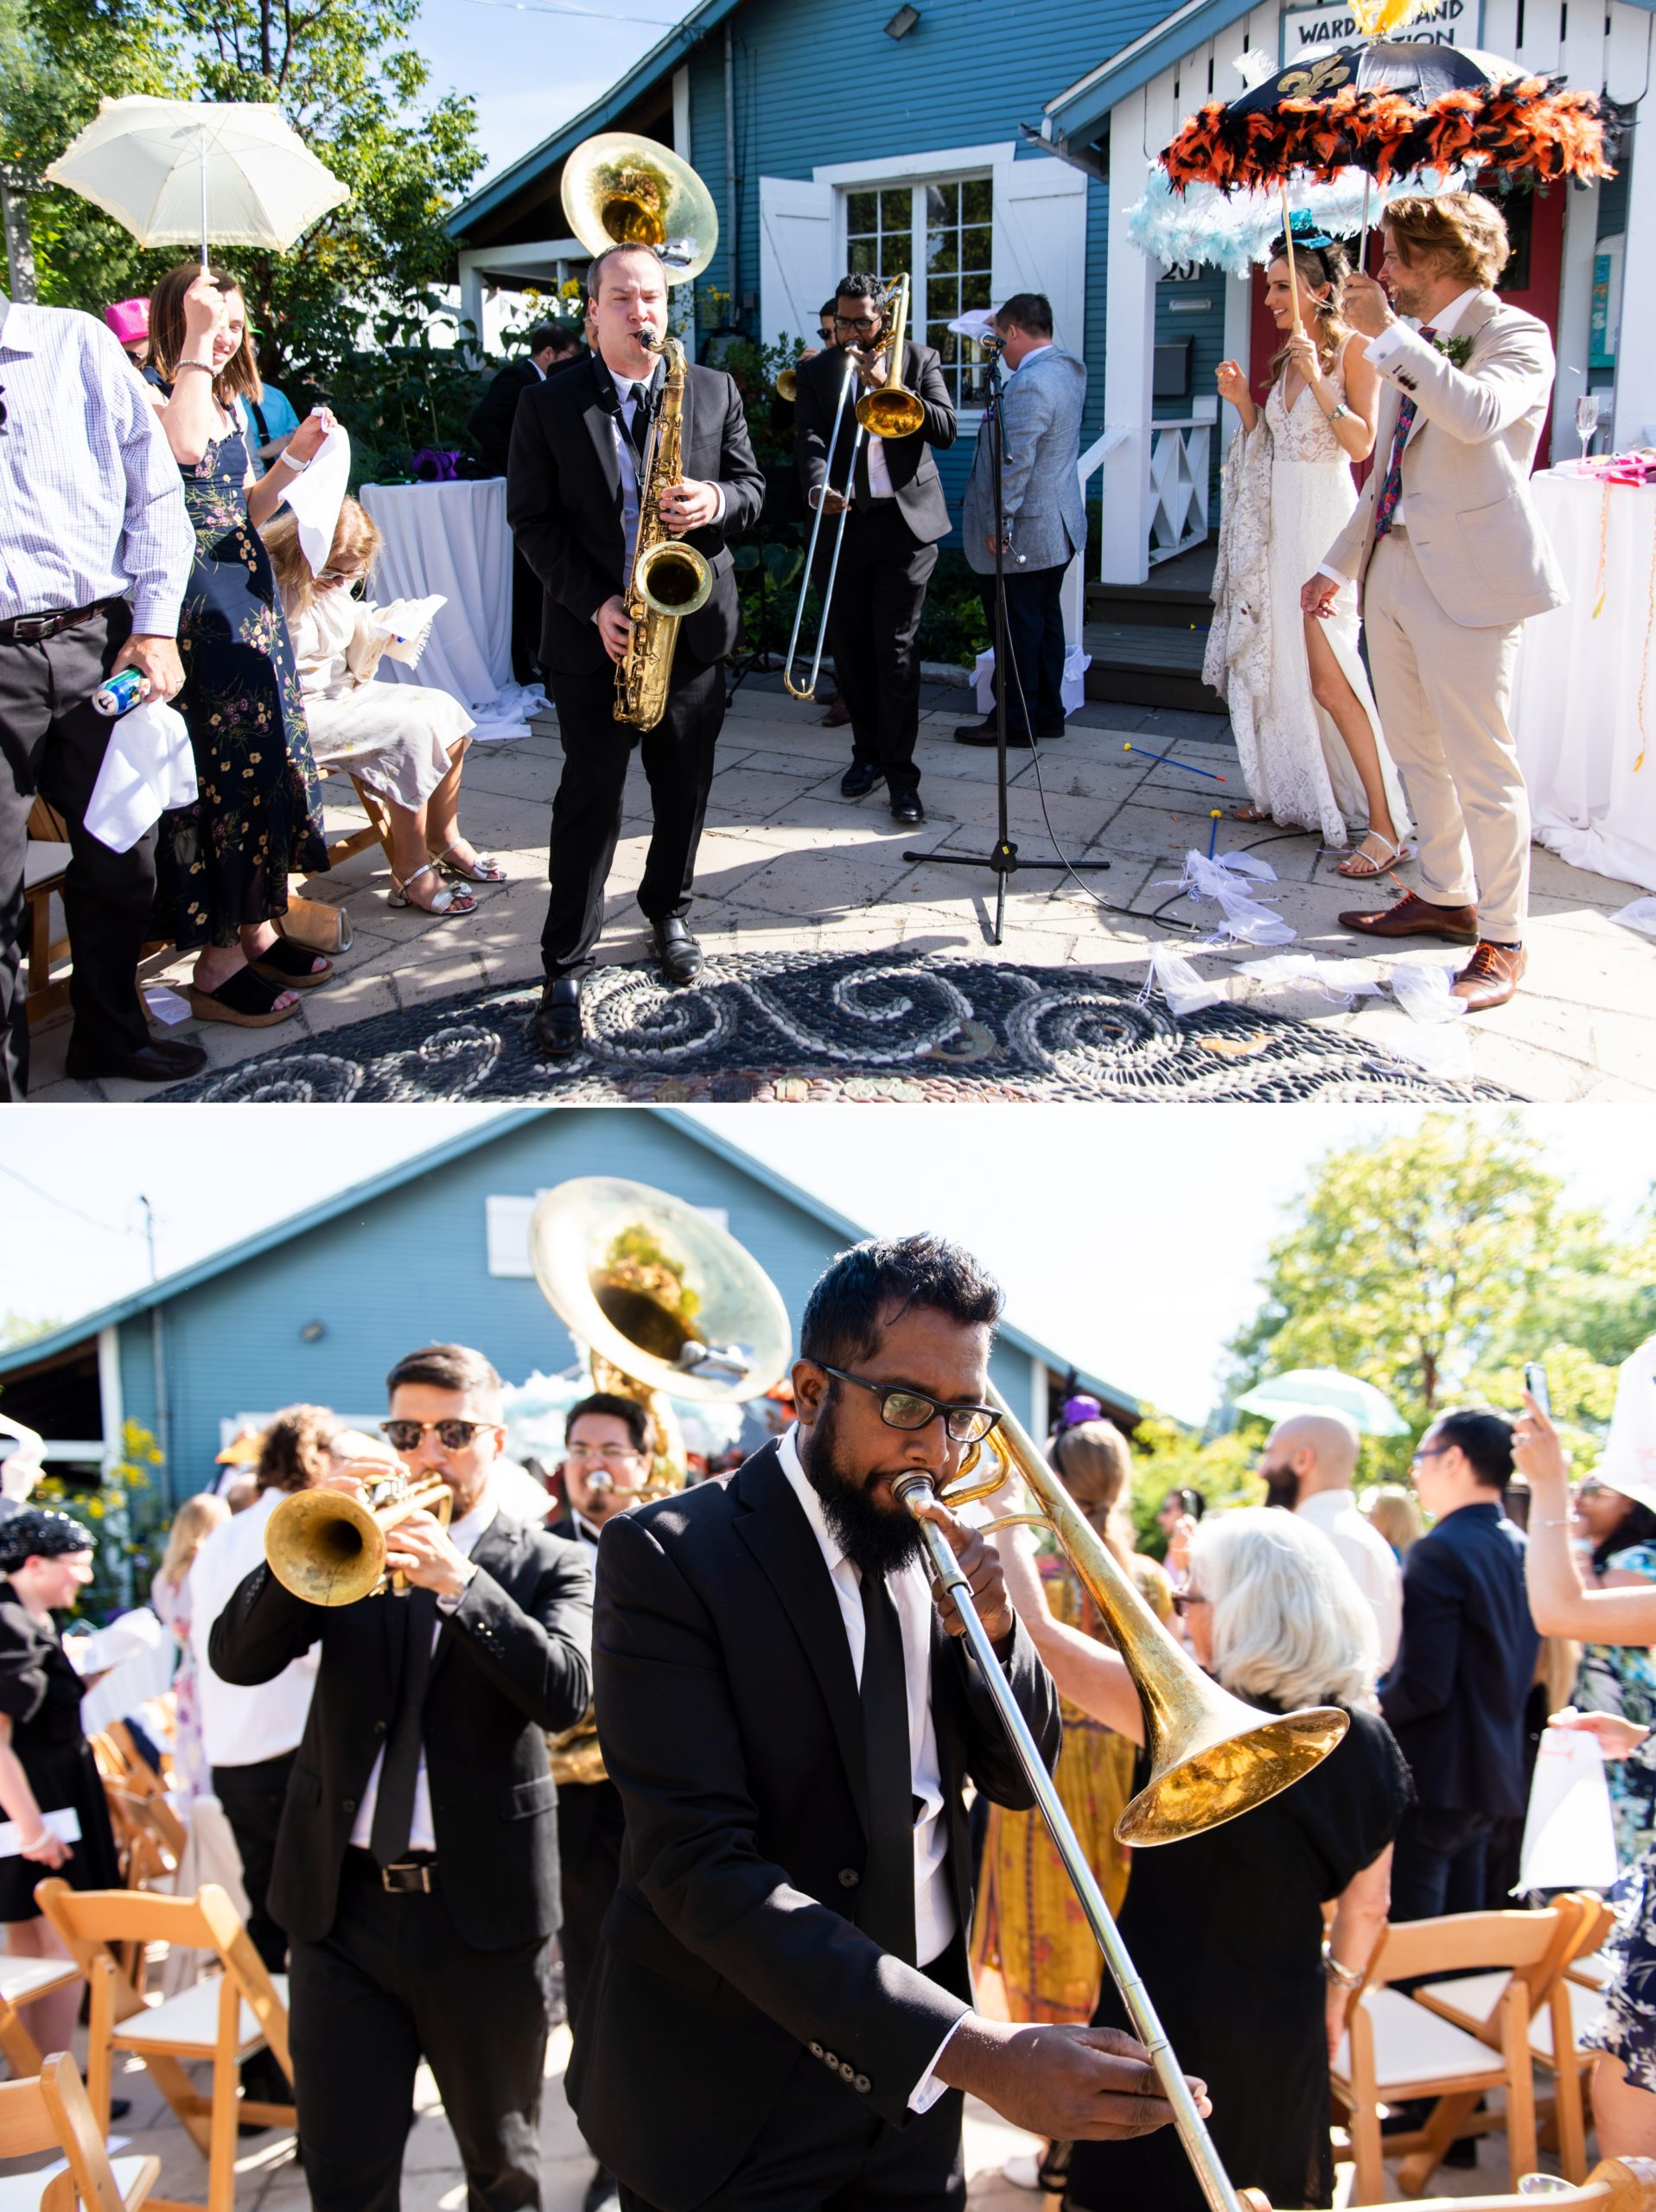 Brass Band Second Line Toronto Ward's Island Summer Wedding Zsuzsi Pal Photography